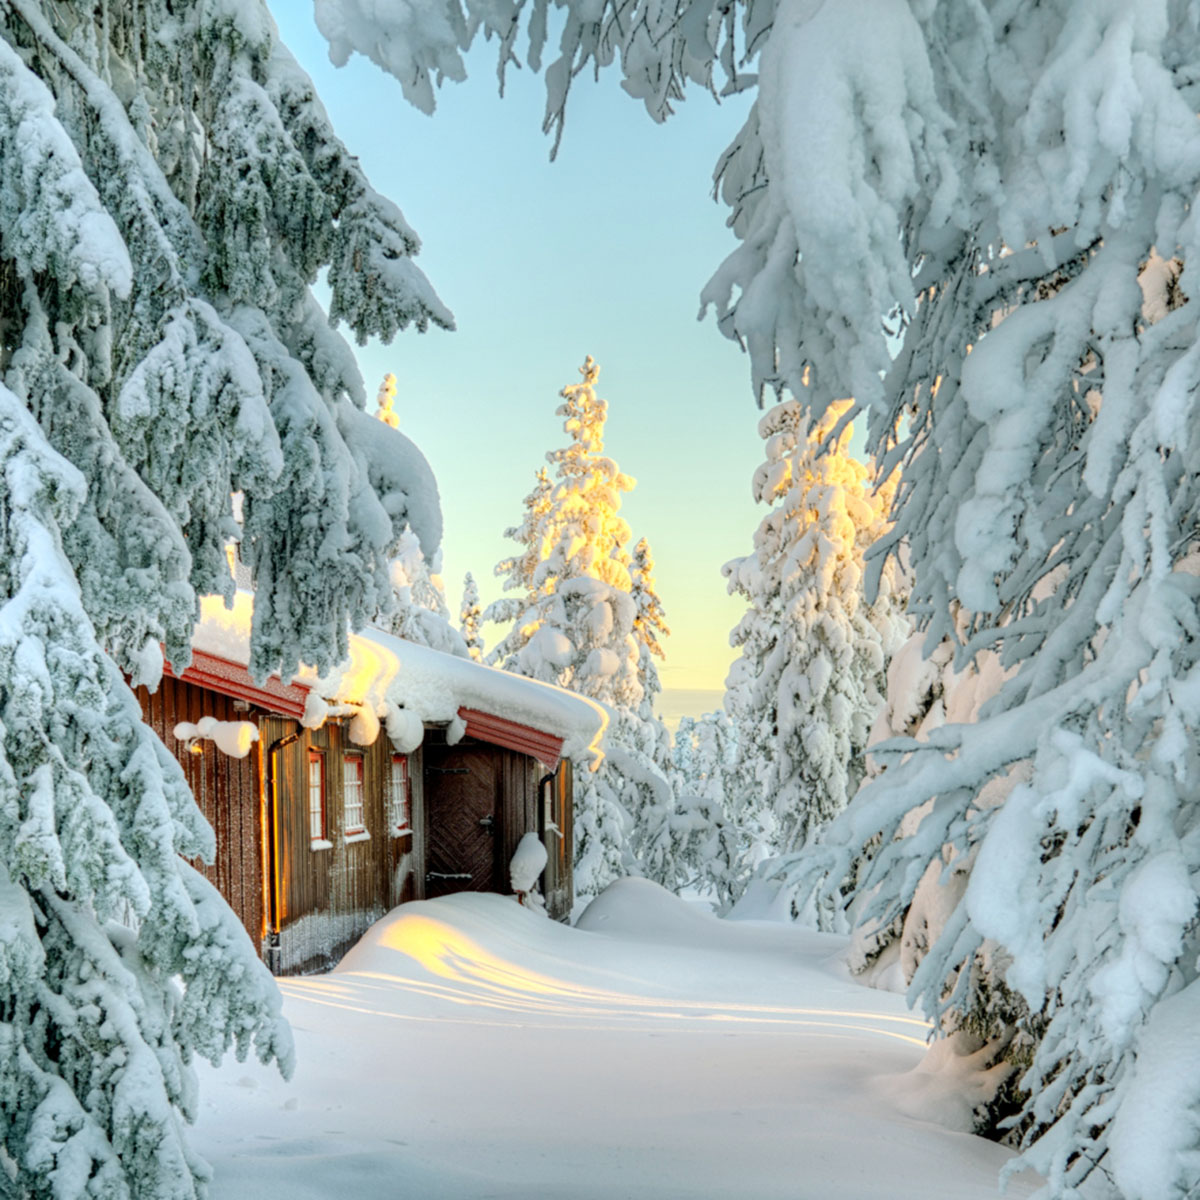 Snow Covered Small Cabin